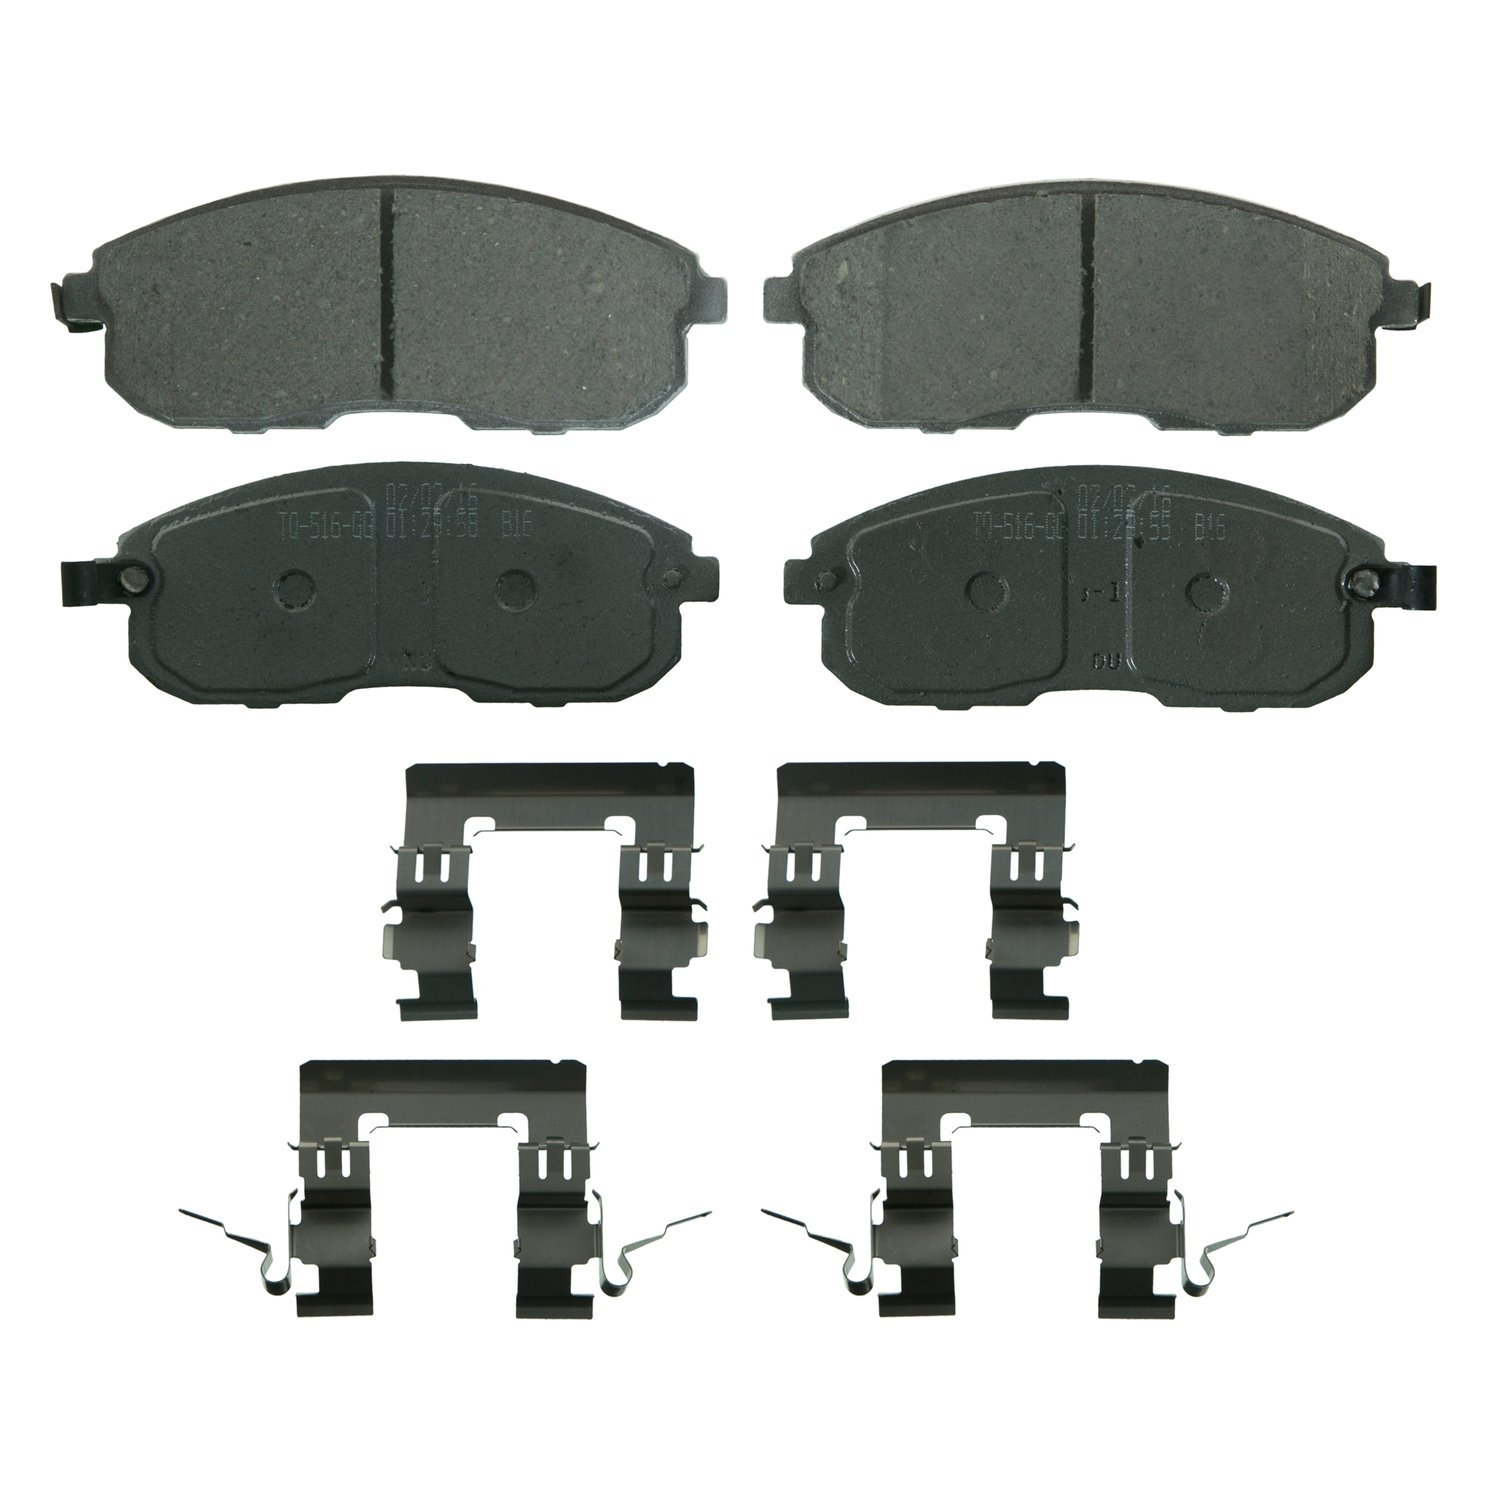 Wagner QC815D Disc Brake Pad Set For Nissan Altima, Juke, Sentra